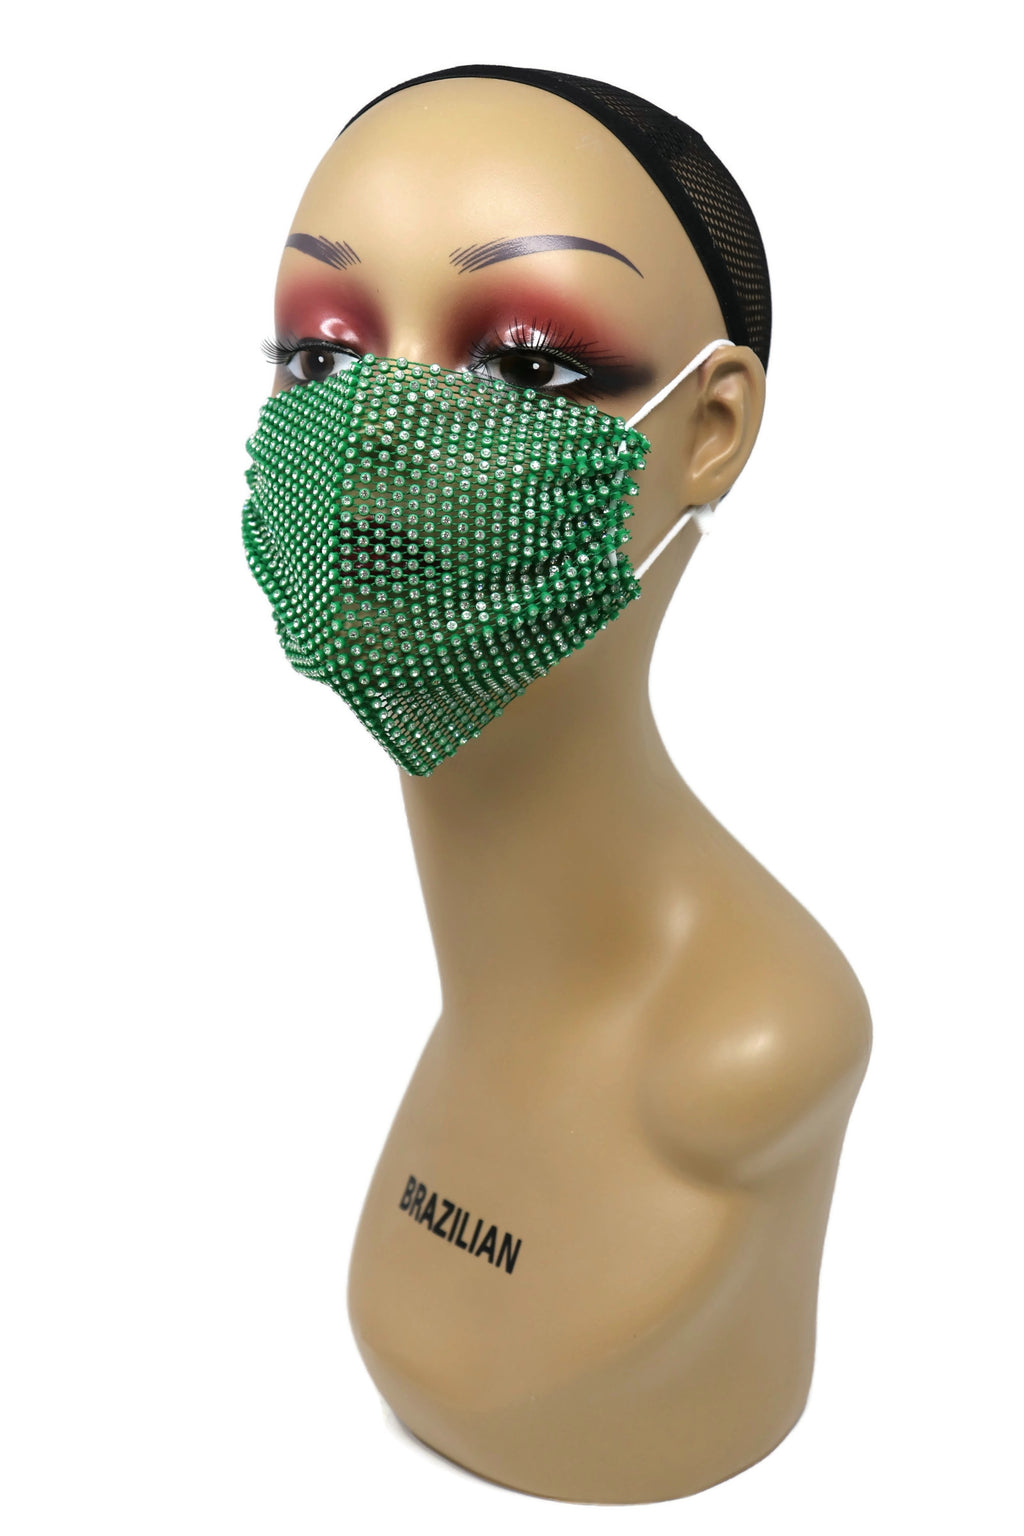 Grid Rhinestone Crystal Mask (Green)